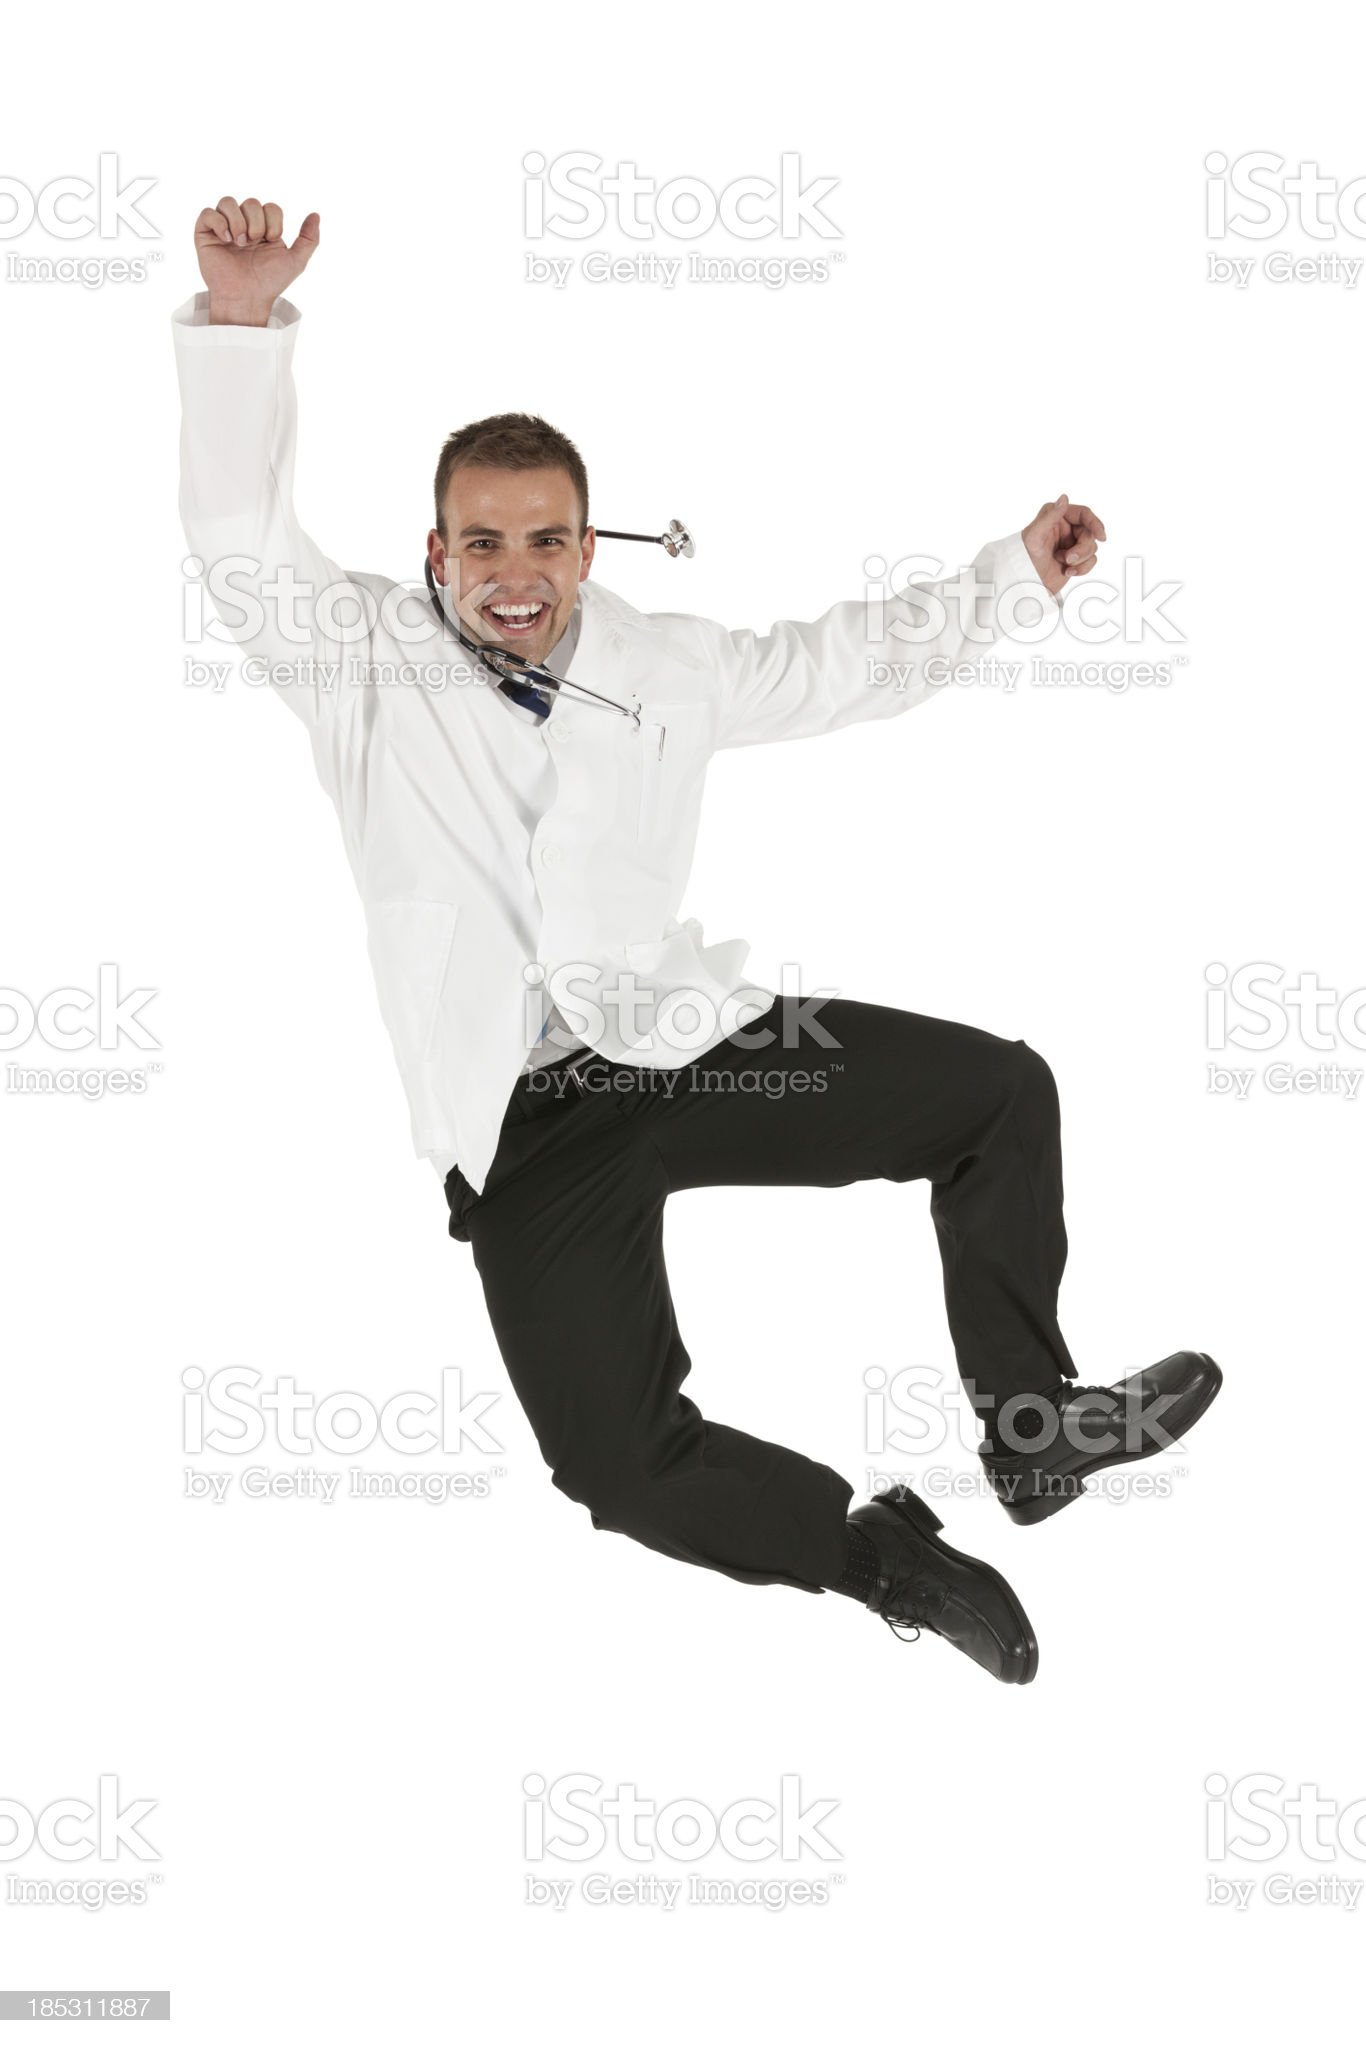 Male doctor jumping in excitement royalty-free stock photo